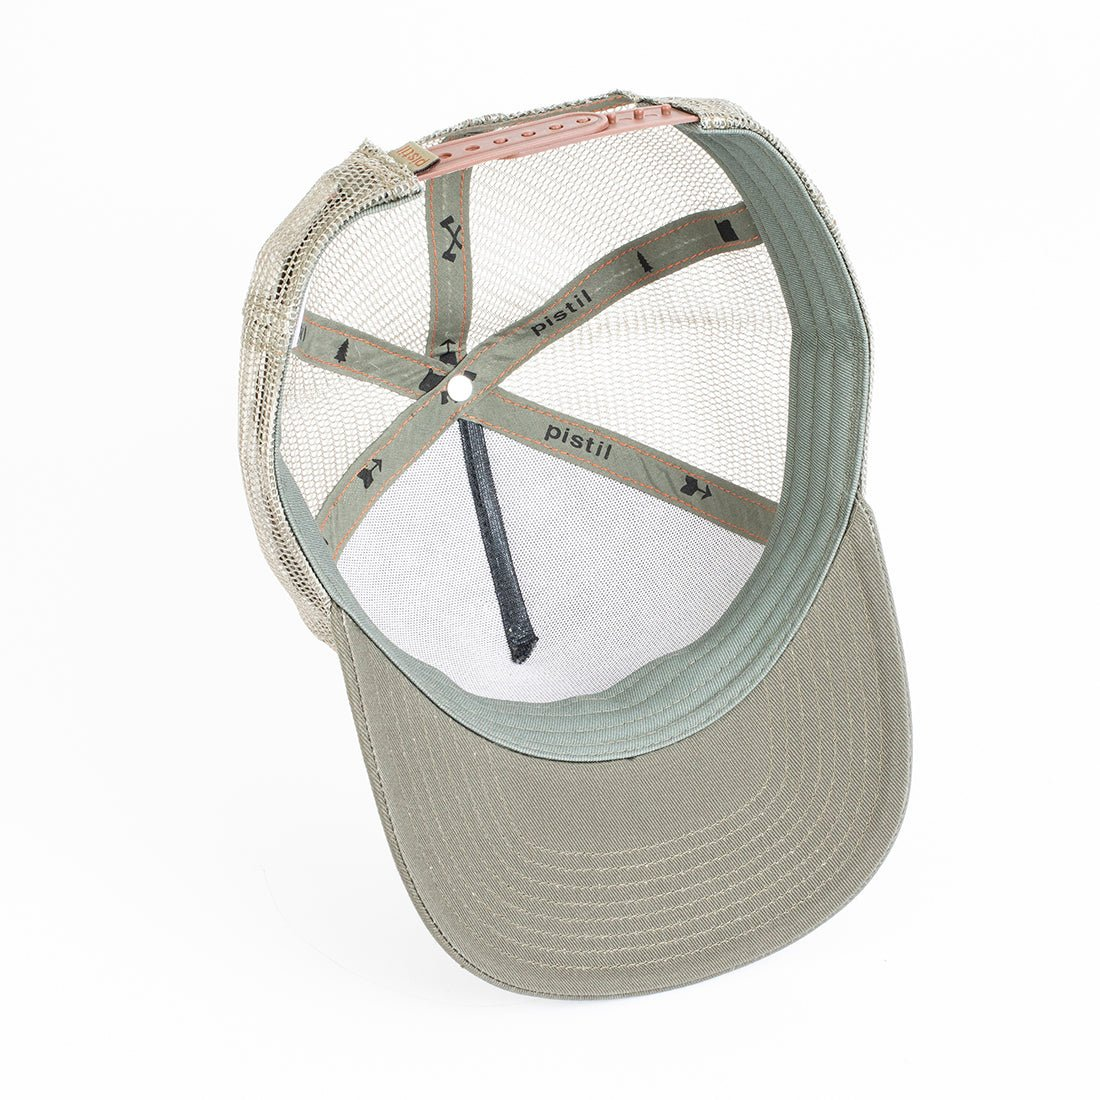 Basin Trucker Hat